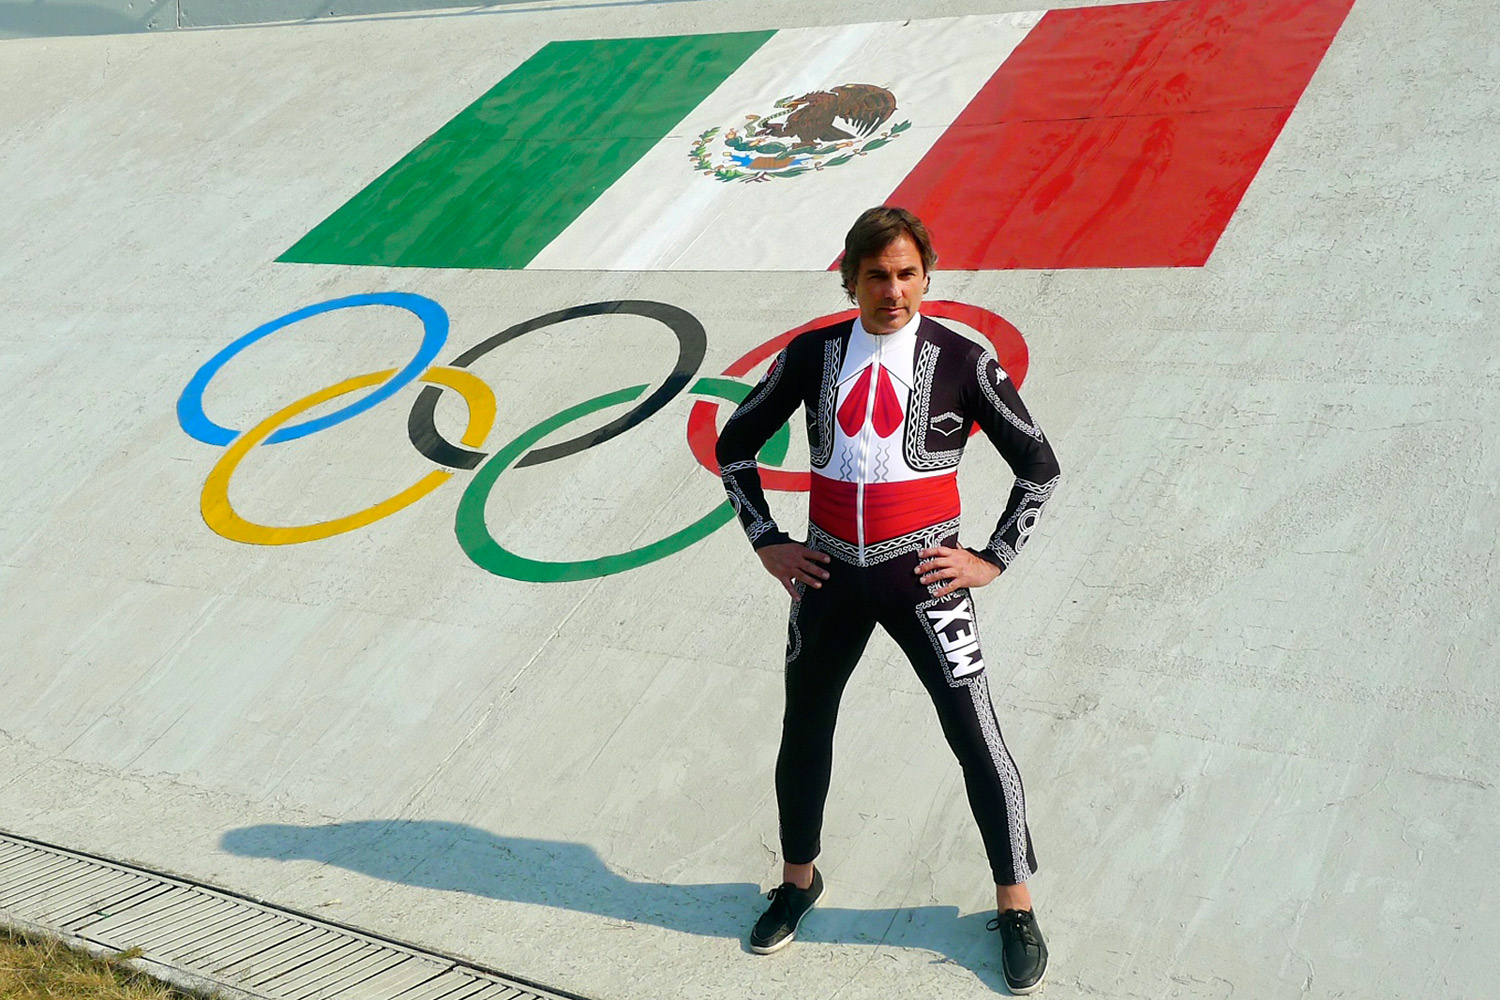 Mexico Olympic Committee/AP